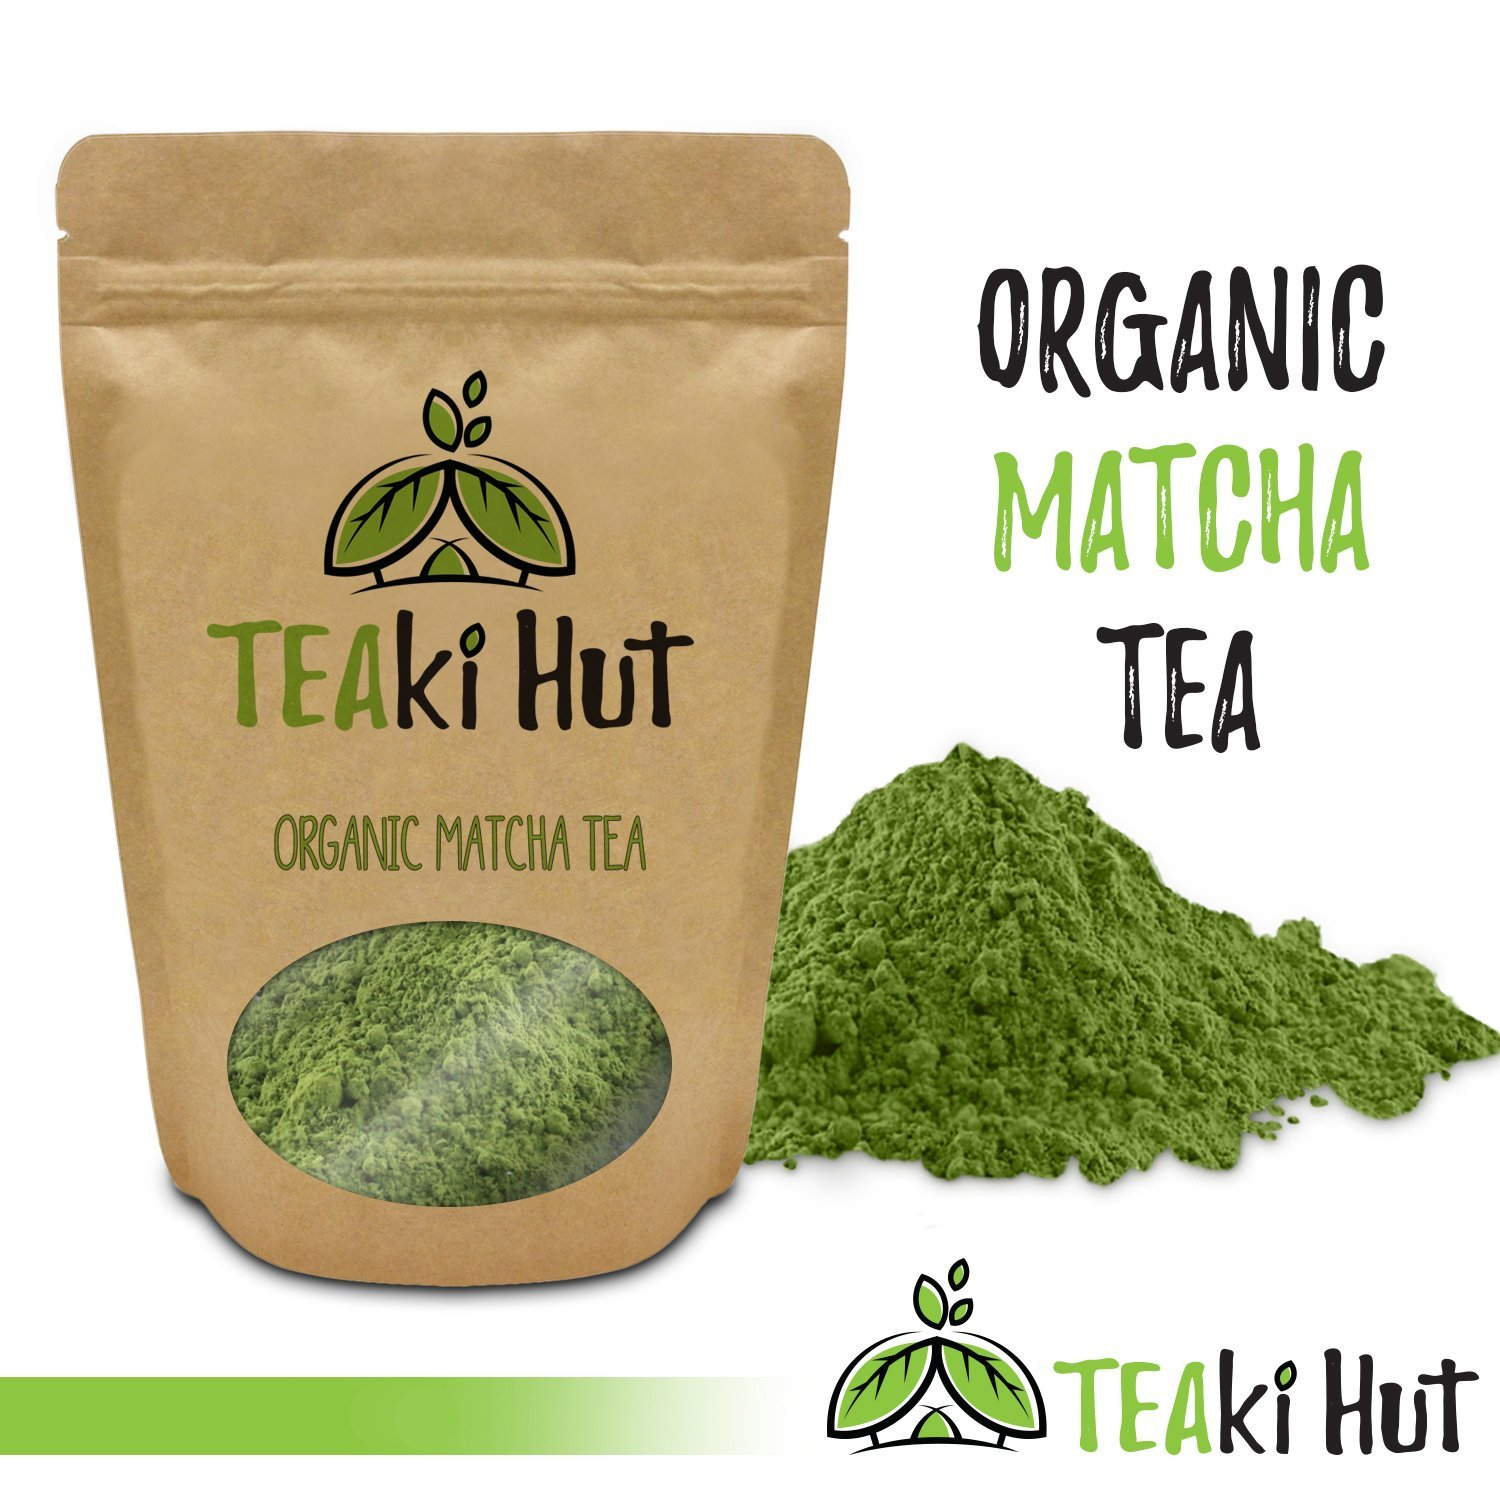 TEAki Hut Organic Matcha Green Tea Powder 2 Ounce (50 Servings) Culinary Grade | Excellent Weight Loss Benefits | More Antioxidants than Green Tea Bags | Best for Making Matcha Tea